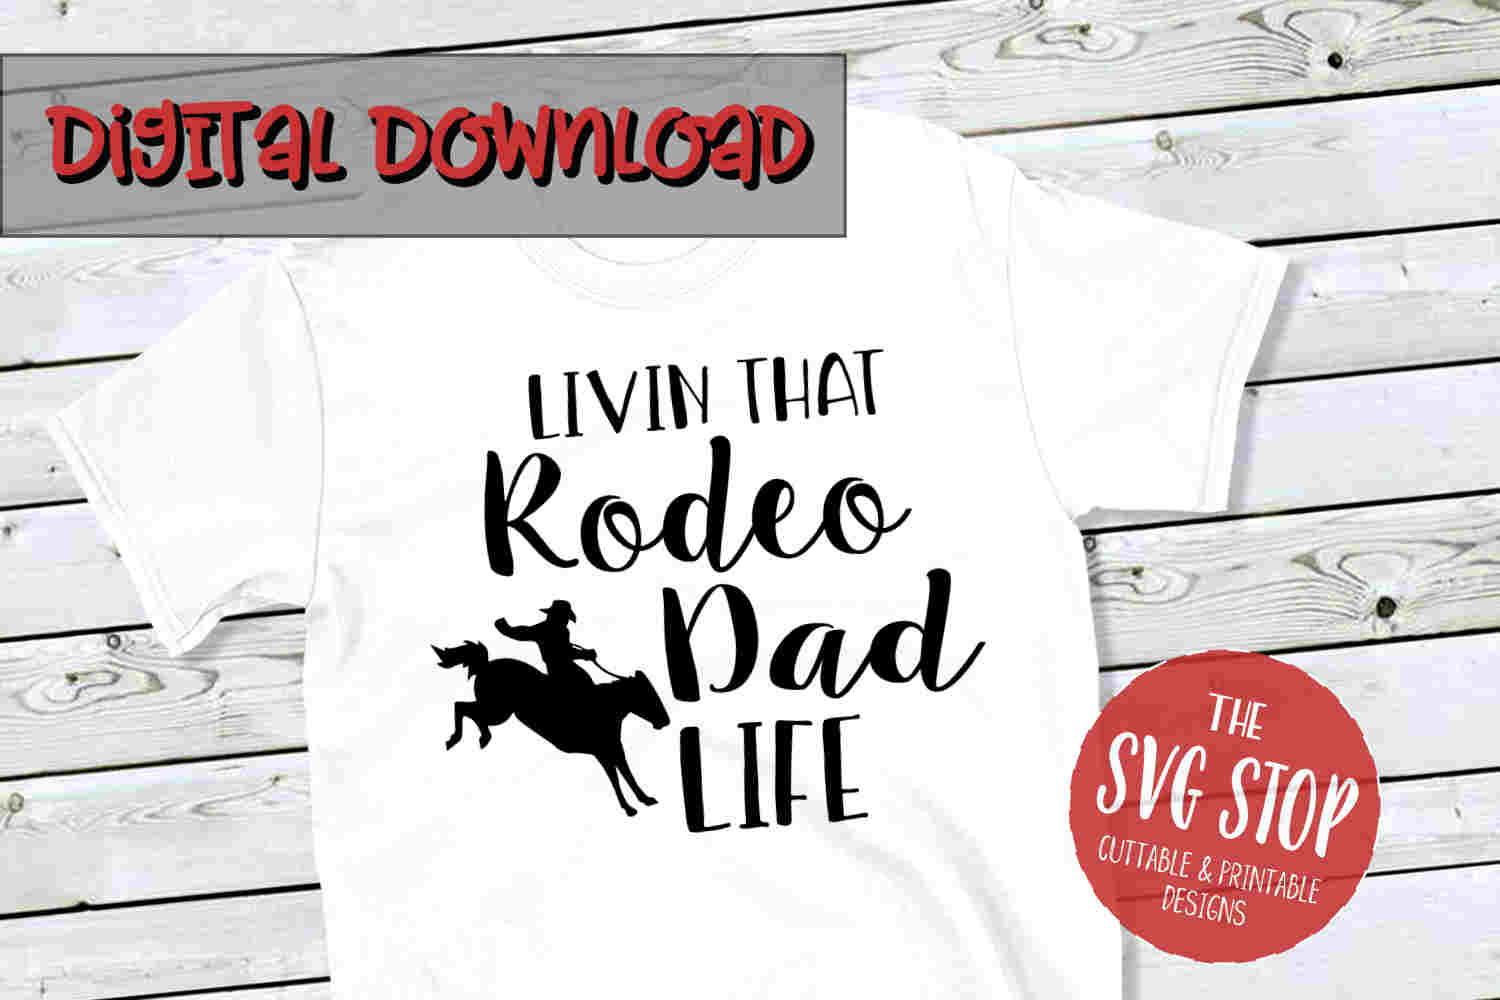 Rodeo Dad -SVG, PNG, DXF example image 1